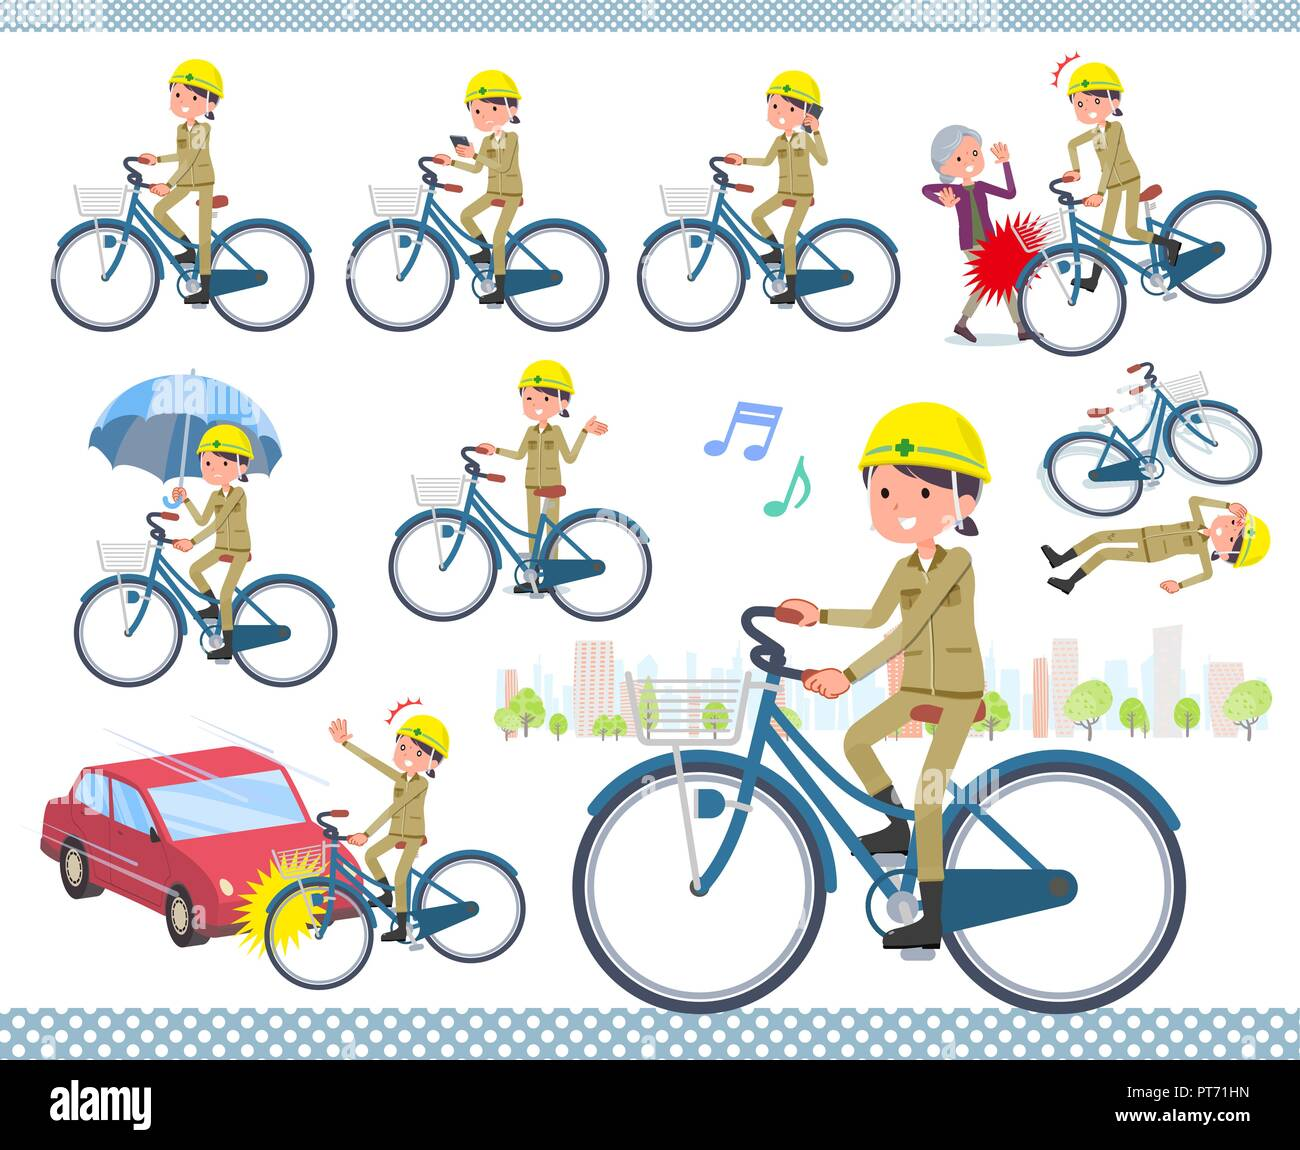 A set of working women riding a city cycle.There are actions on manners and troubles.It's vector art so it's easy to edit. - Stock Vector